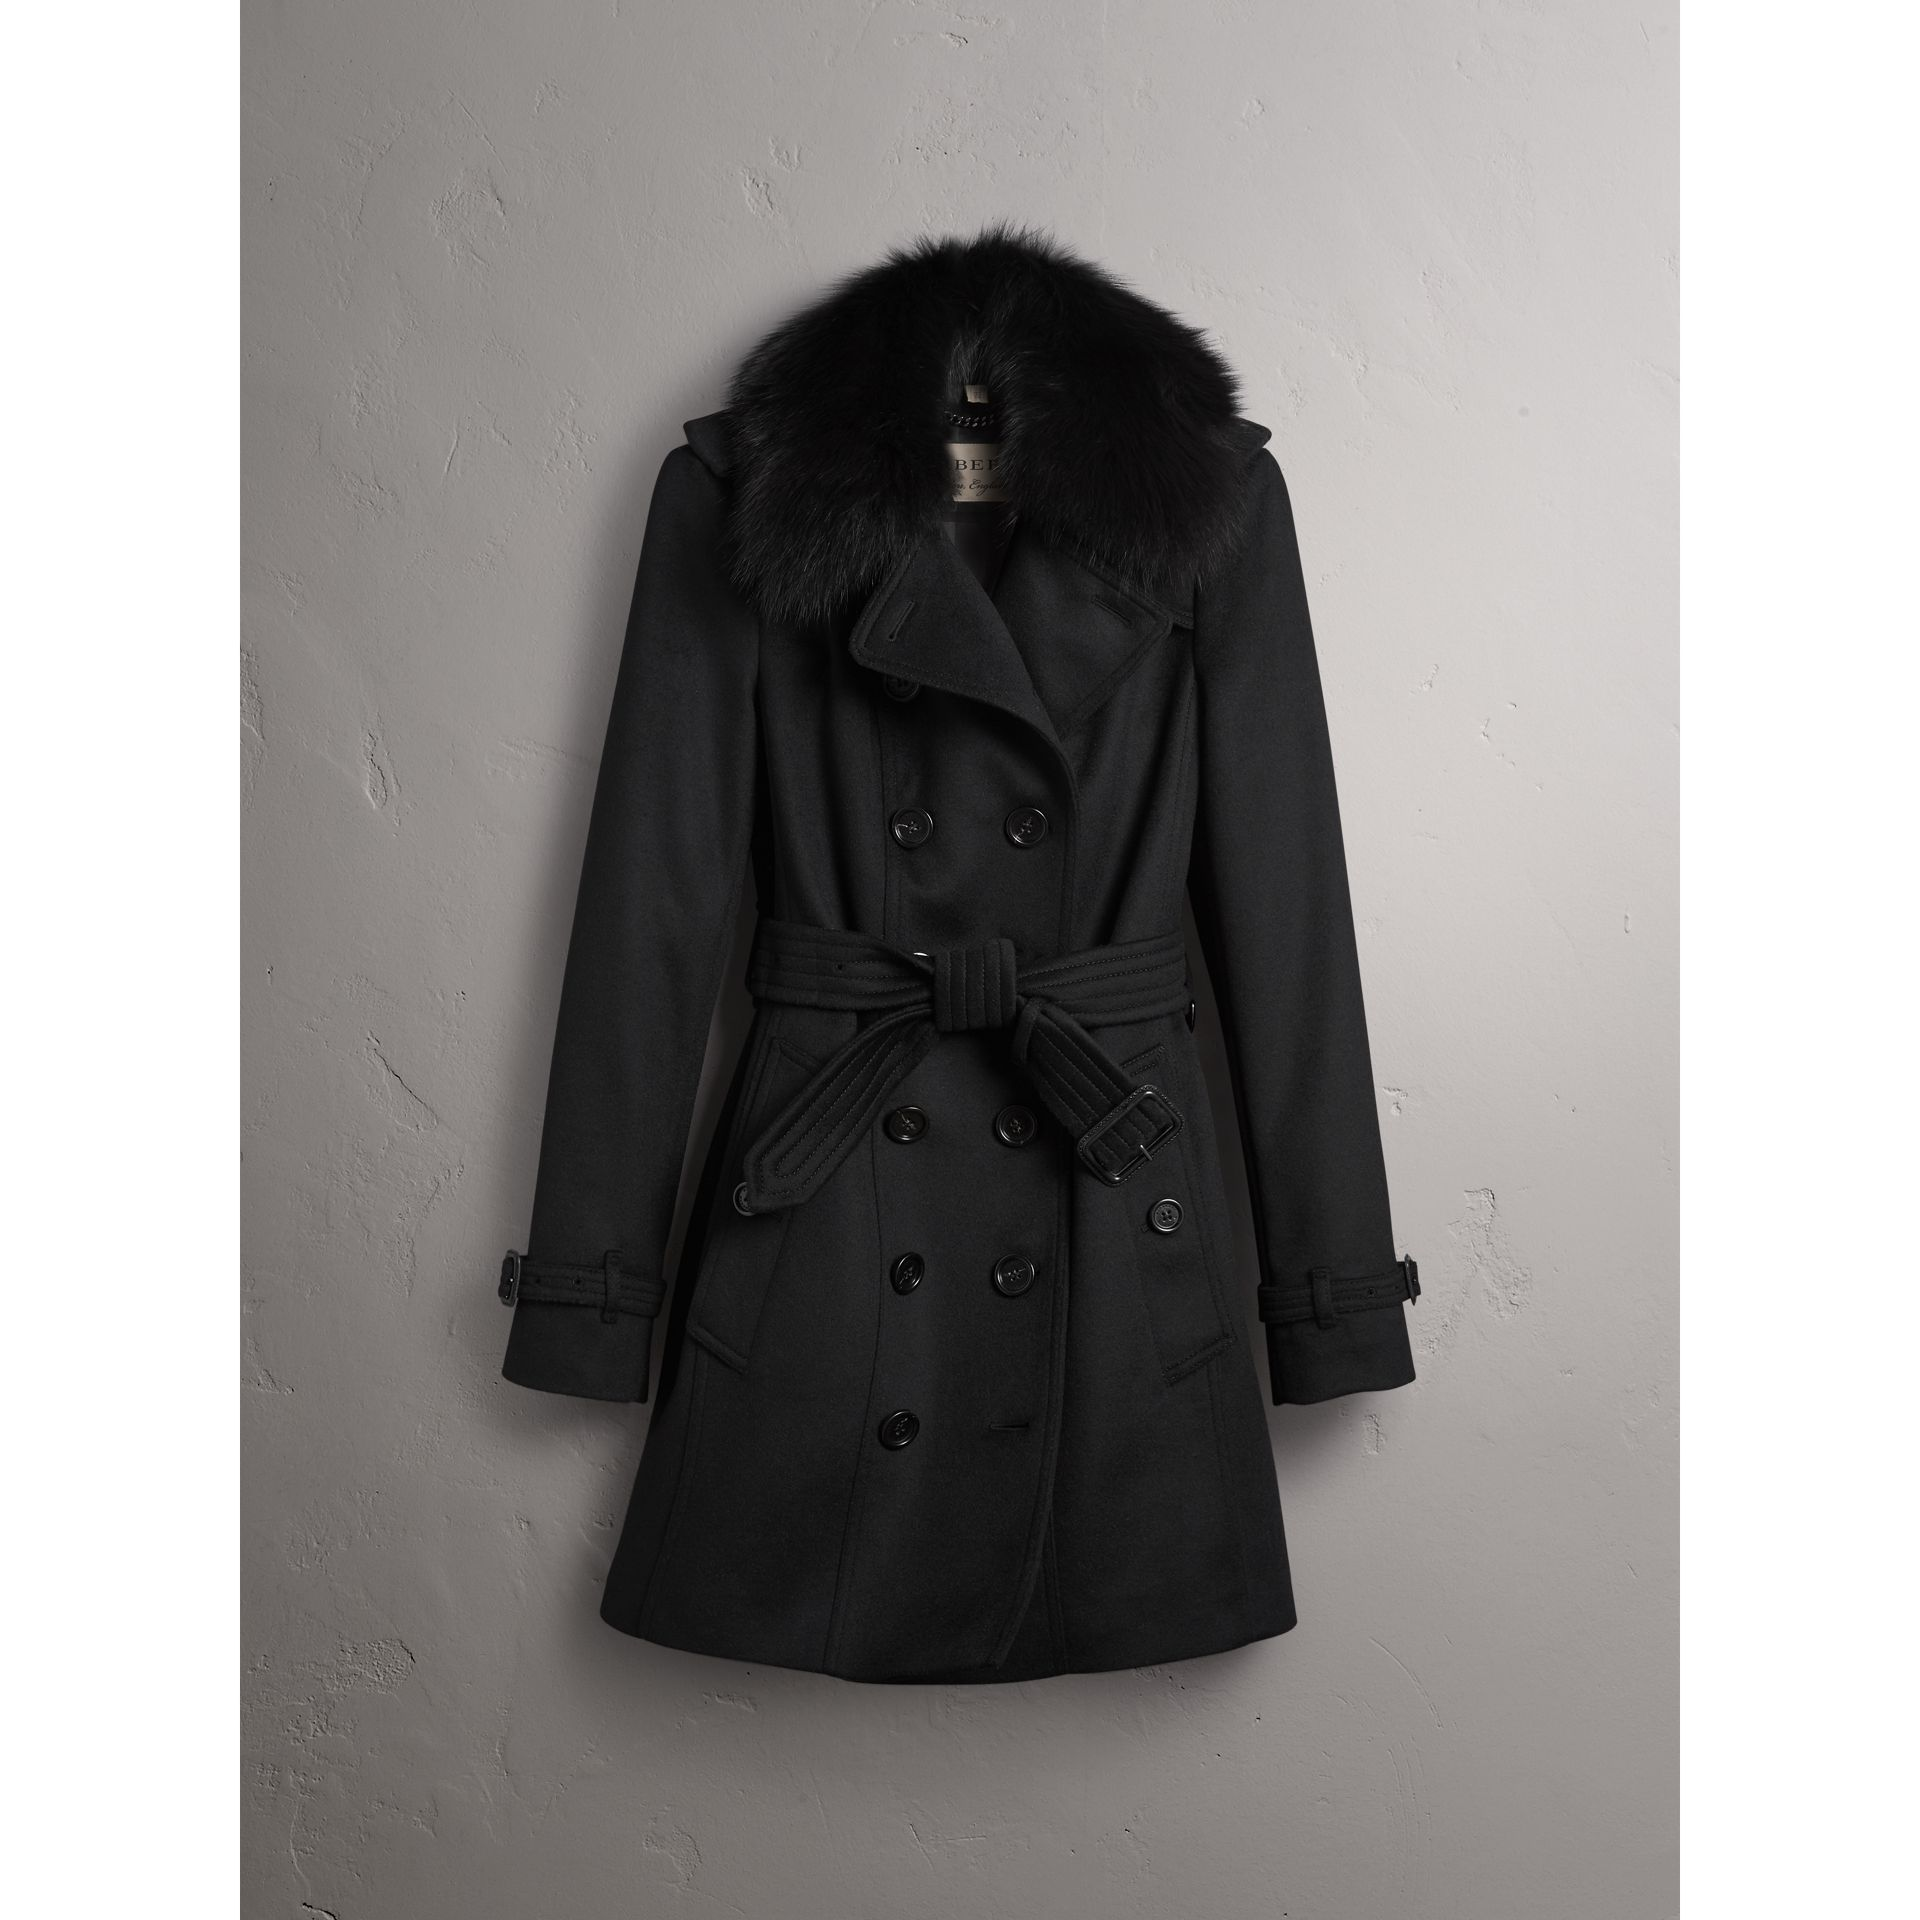 burberry wool cashmere trench coat with fur collar in black modesens. Black Bedroom Furniture Sets. Home Design Ideas